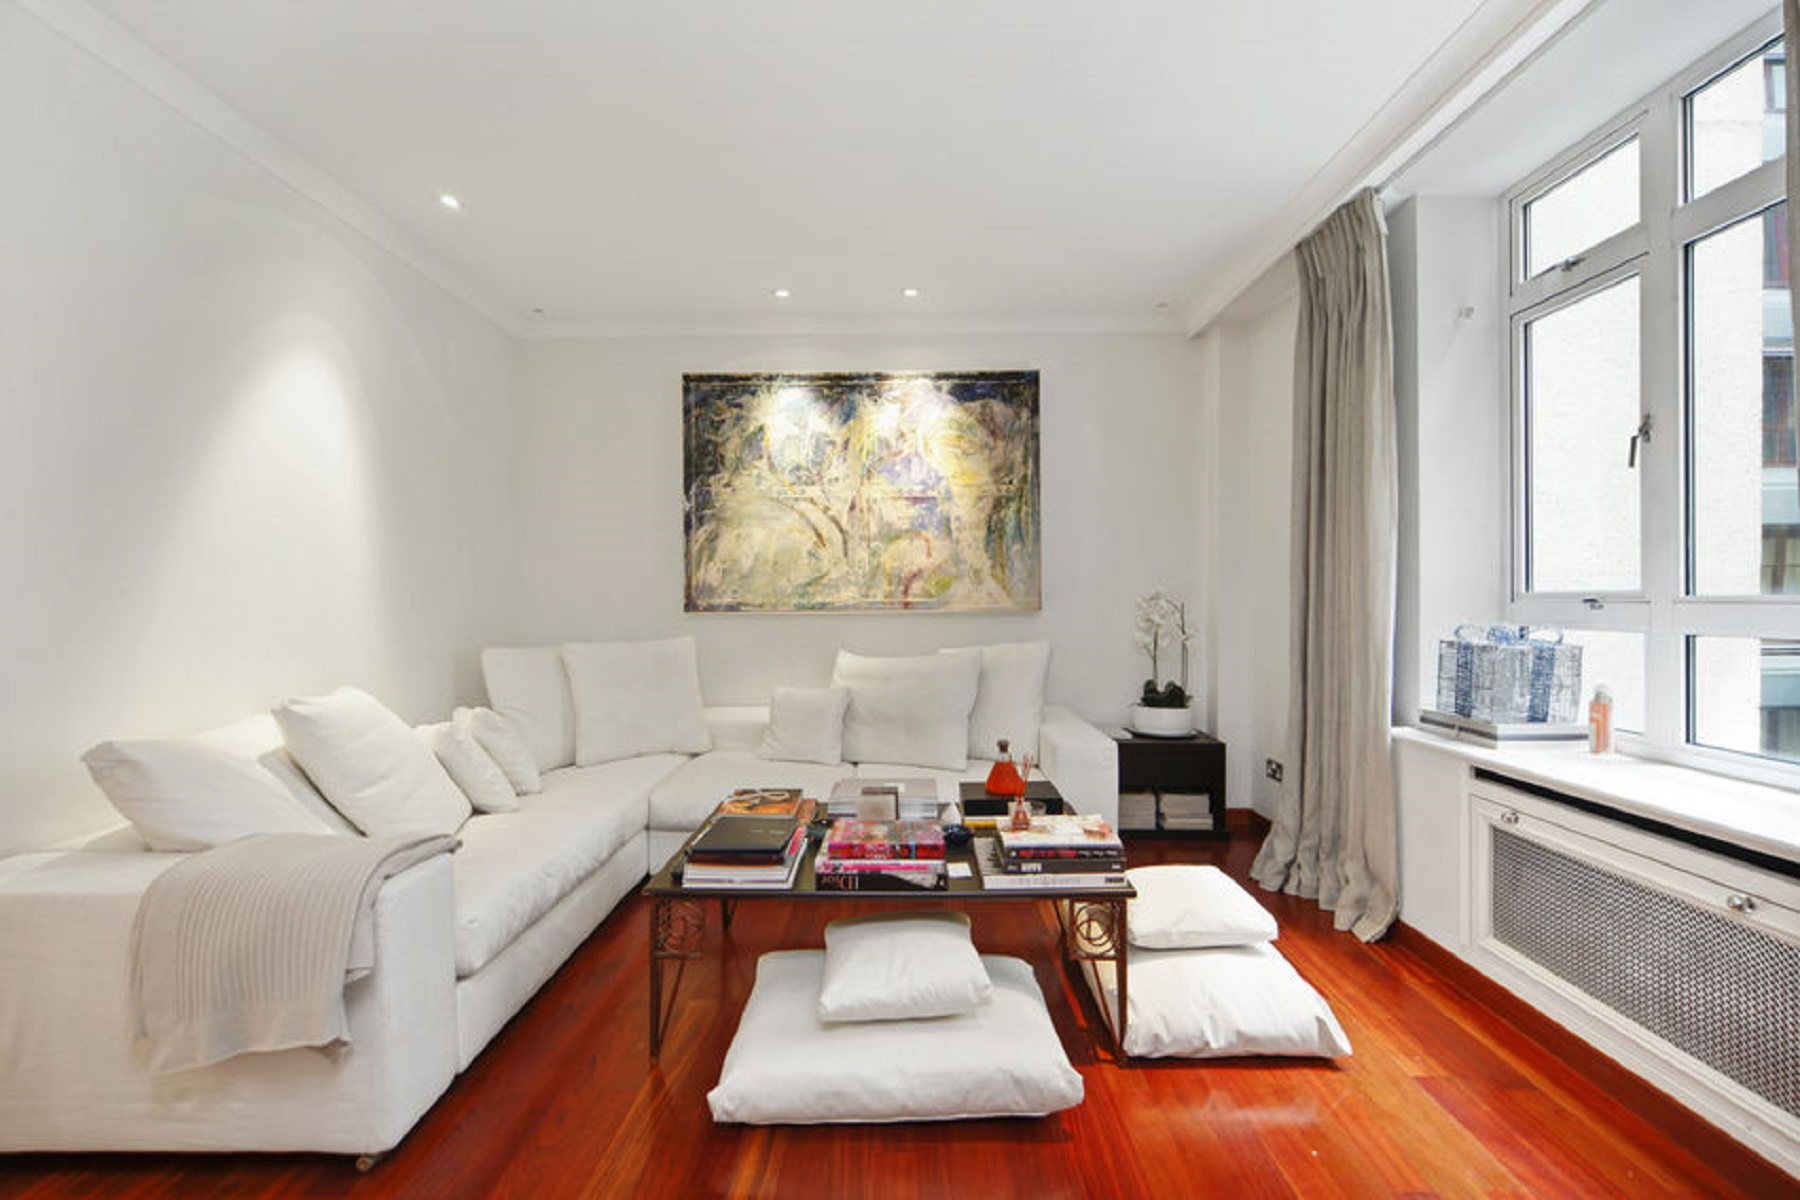 Apartment for Sale at Park Lane London, England, United Kingdom